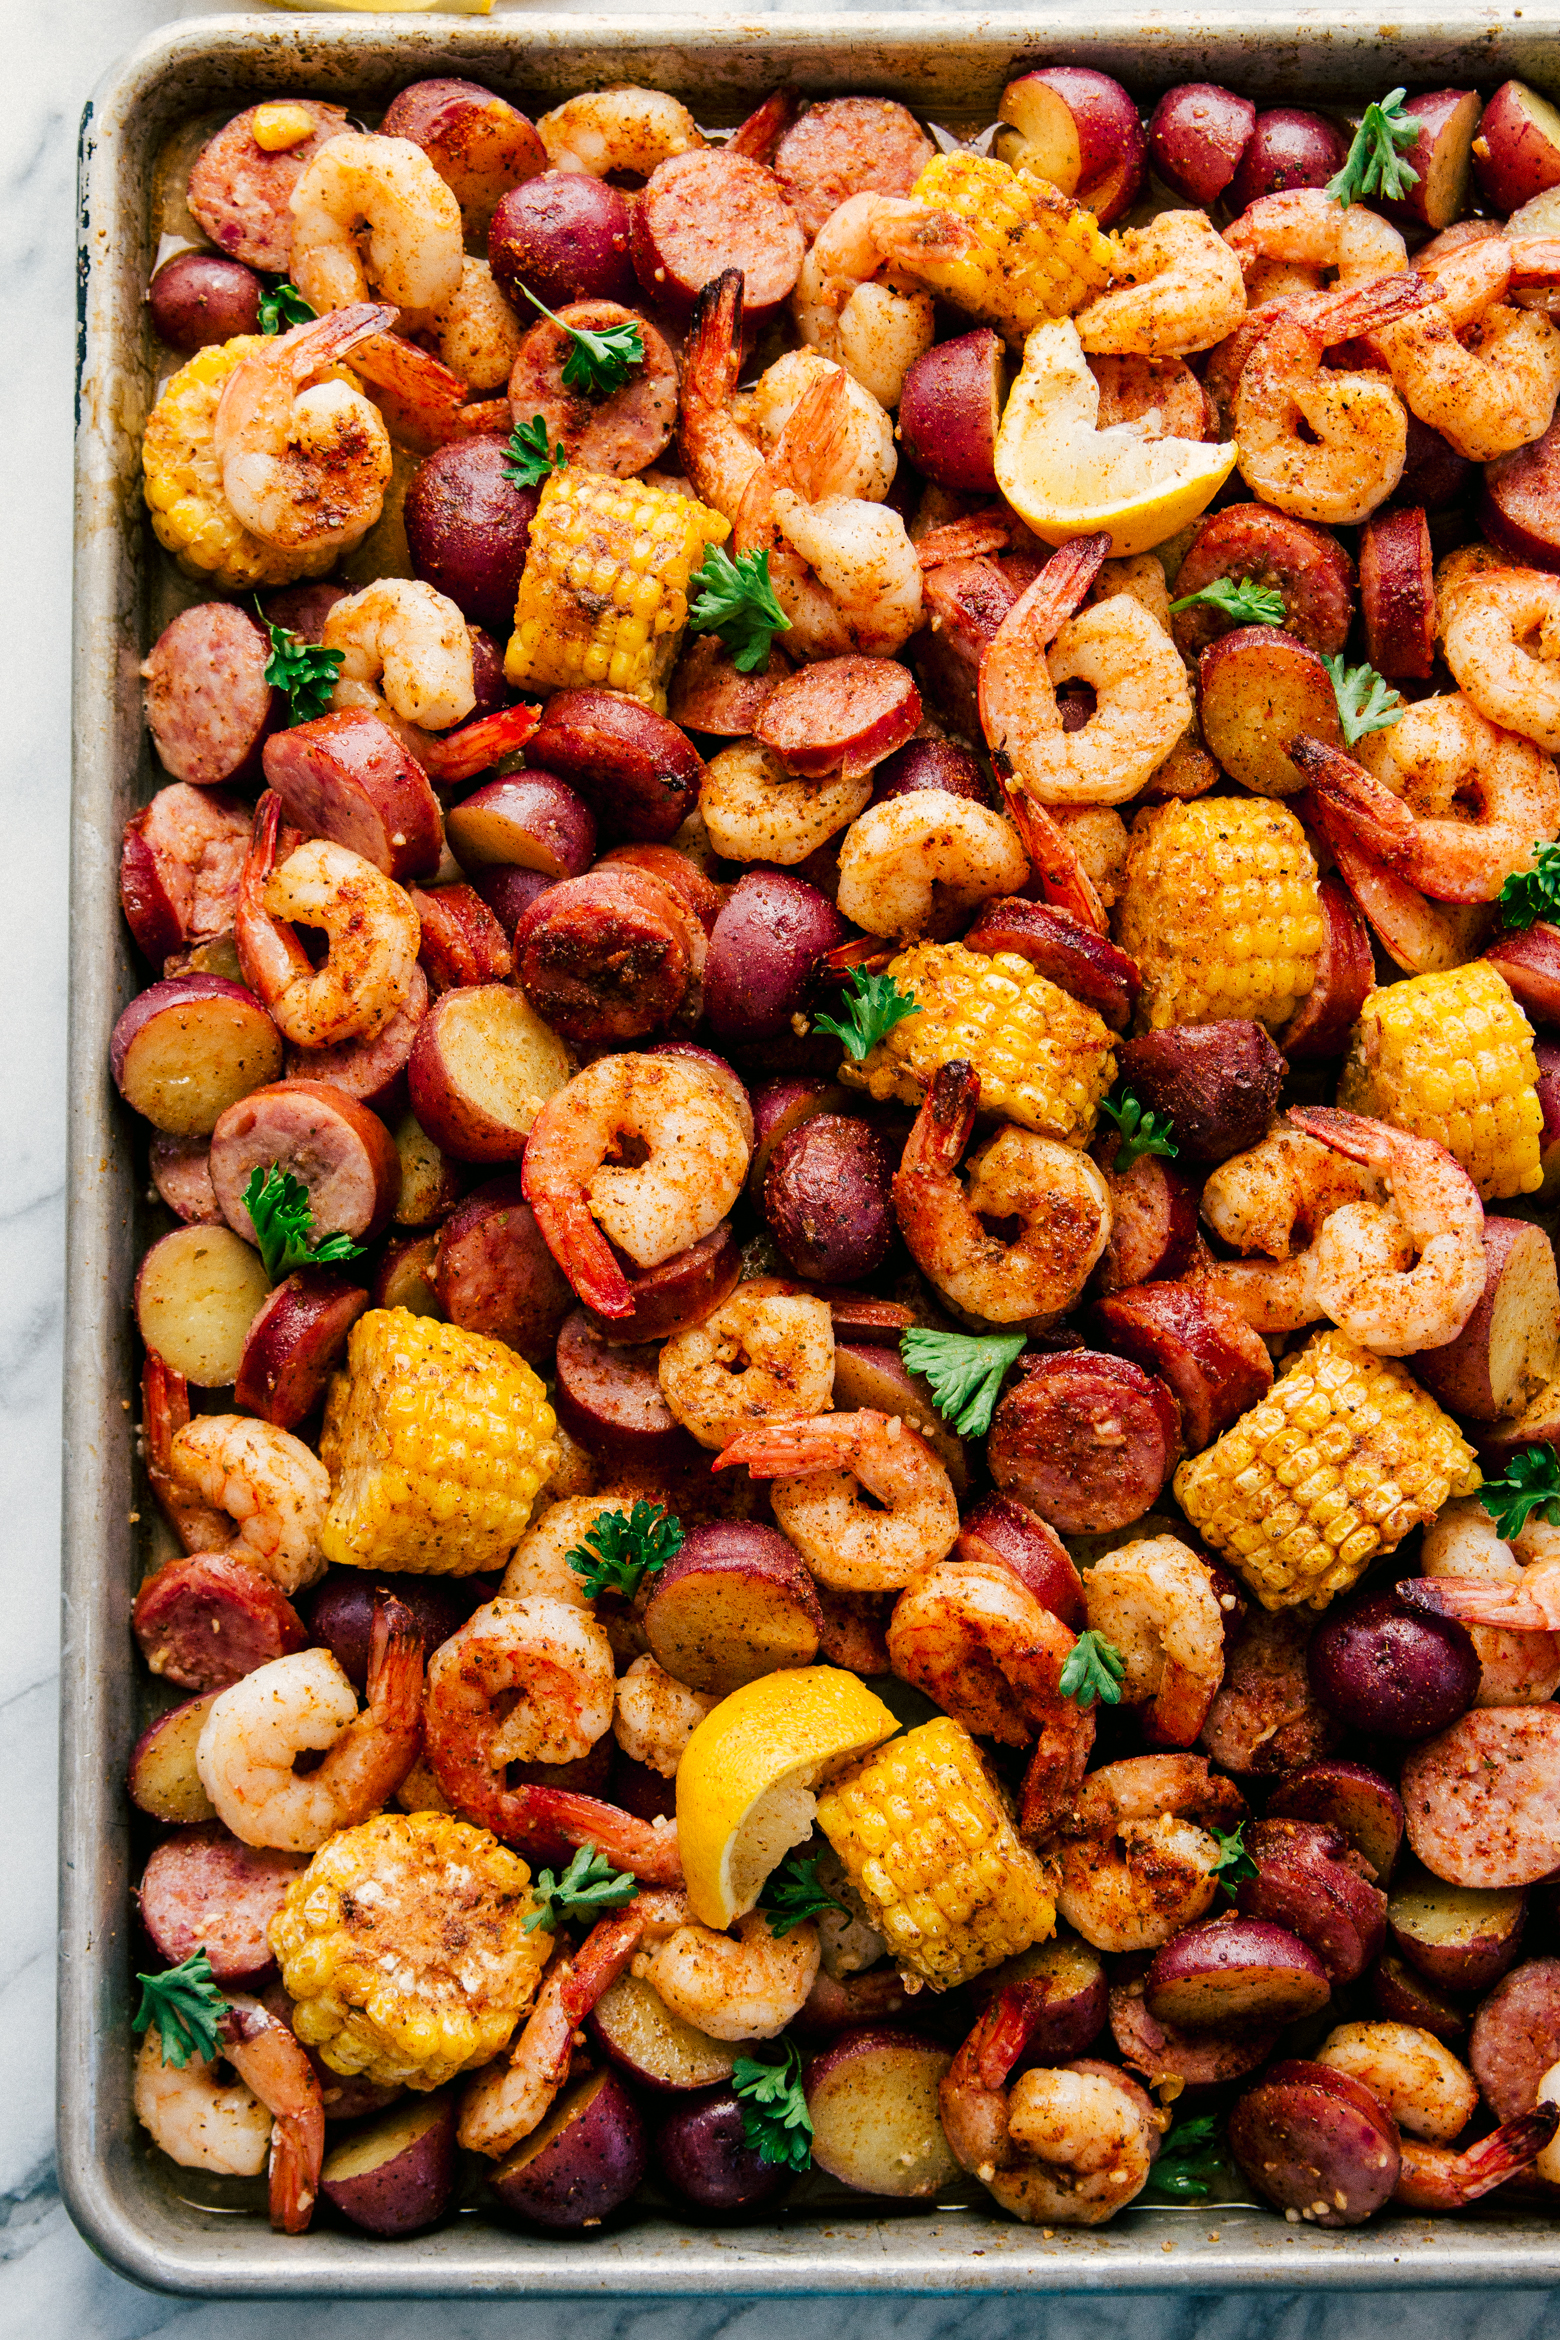 sheet pan garlic shrimp boil with sausage, corn, and red potatoes by The Food Cafe.